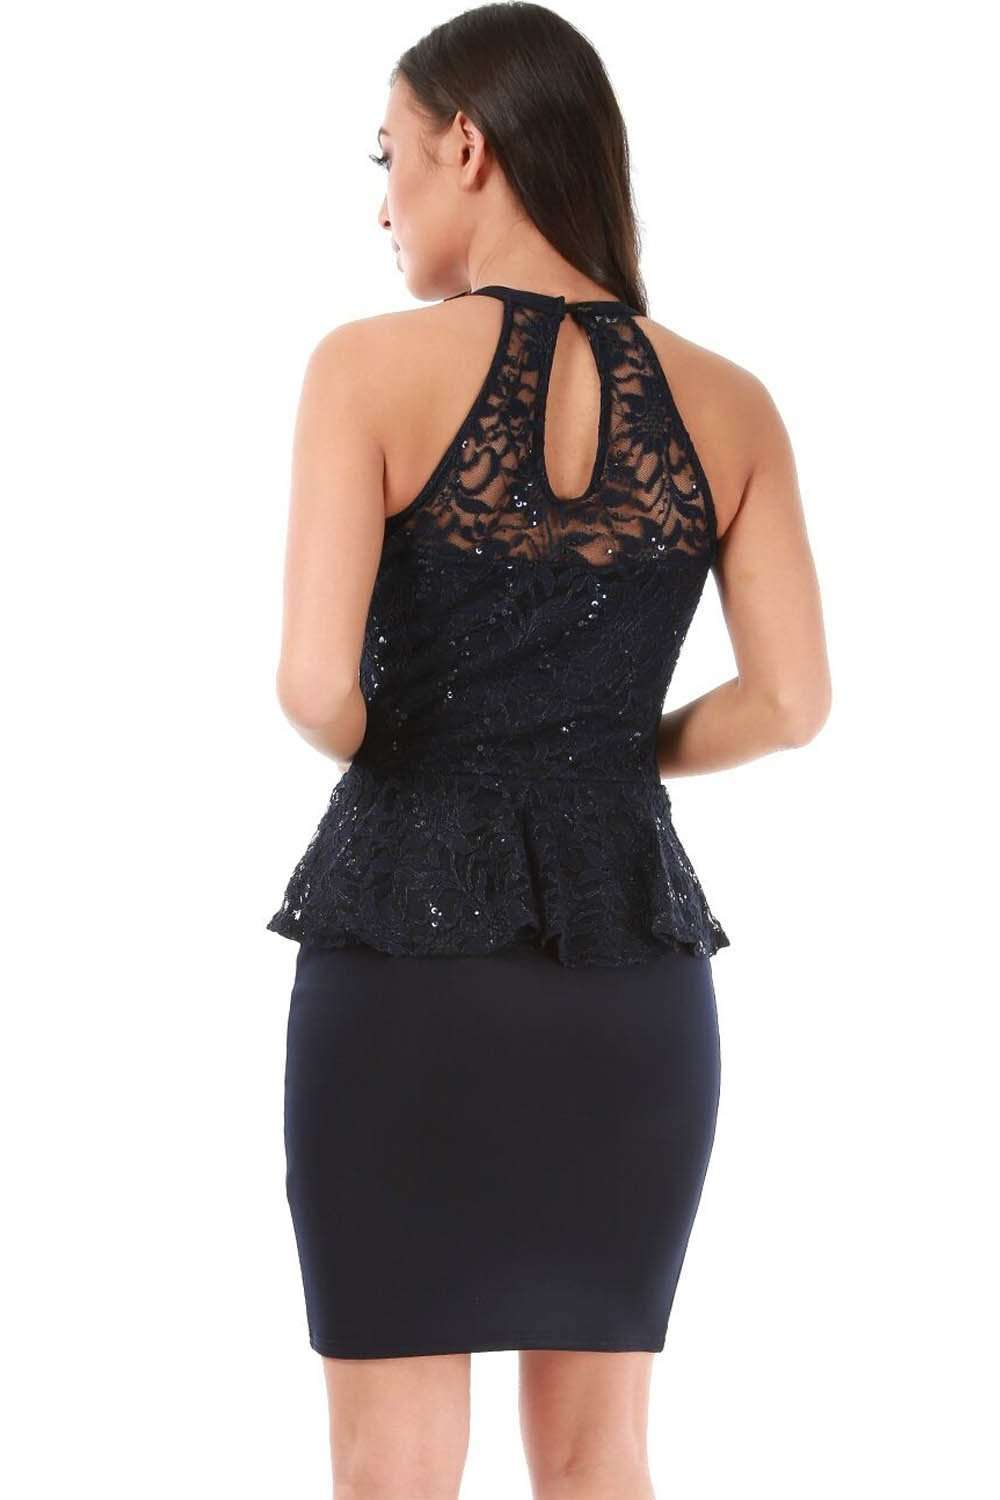 Navy Halterneck Peplum Frill Sequin Bodycon Mini Dress - bejealous-com